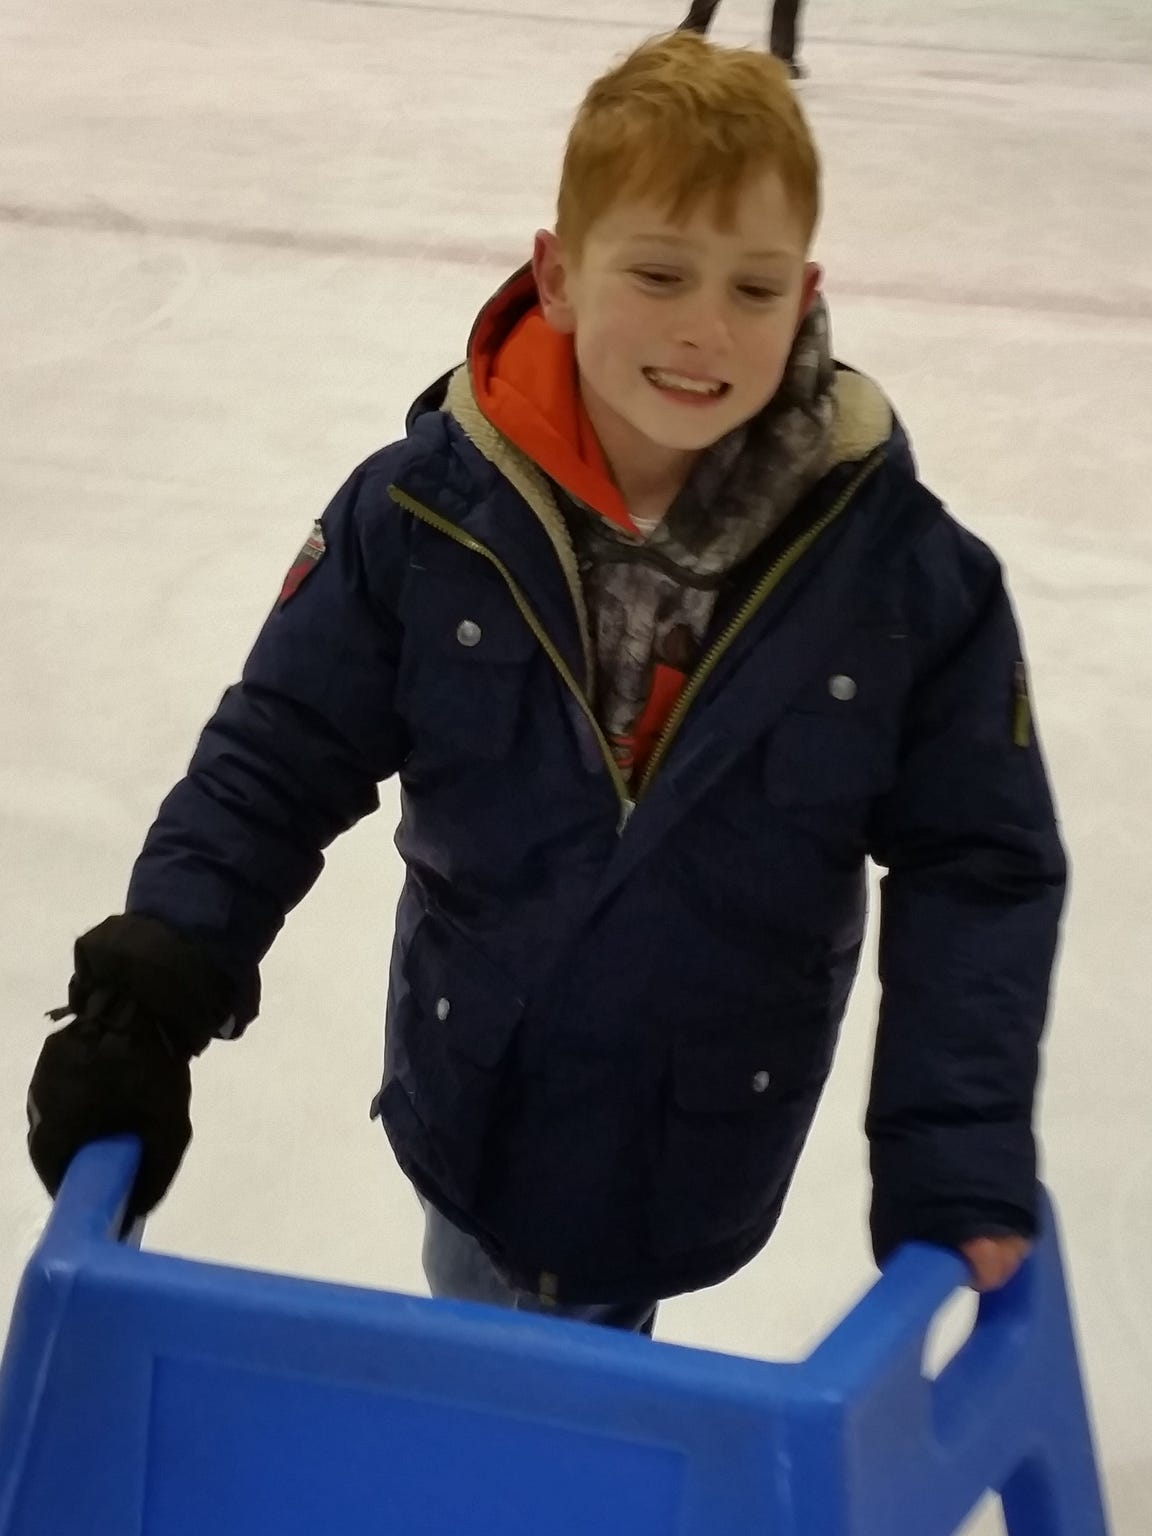 Candon Westervelt is shown ice skating in Elmira in